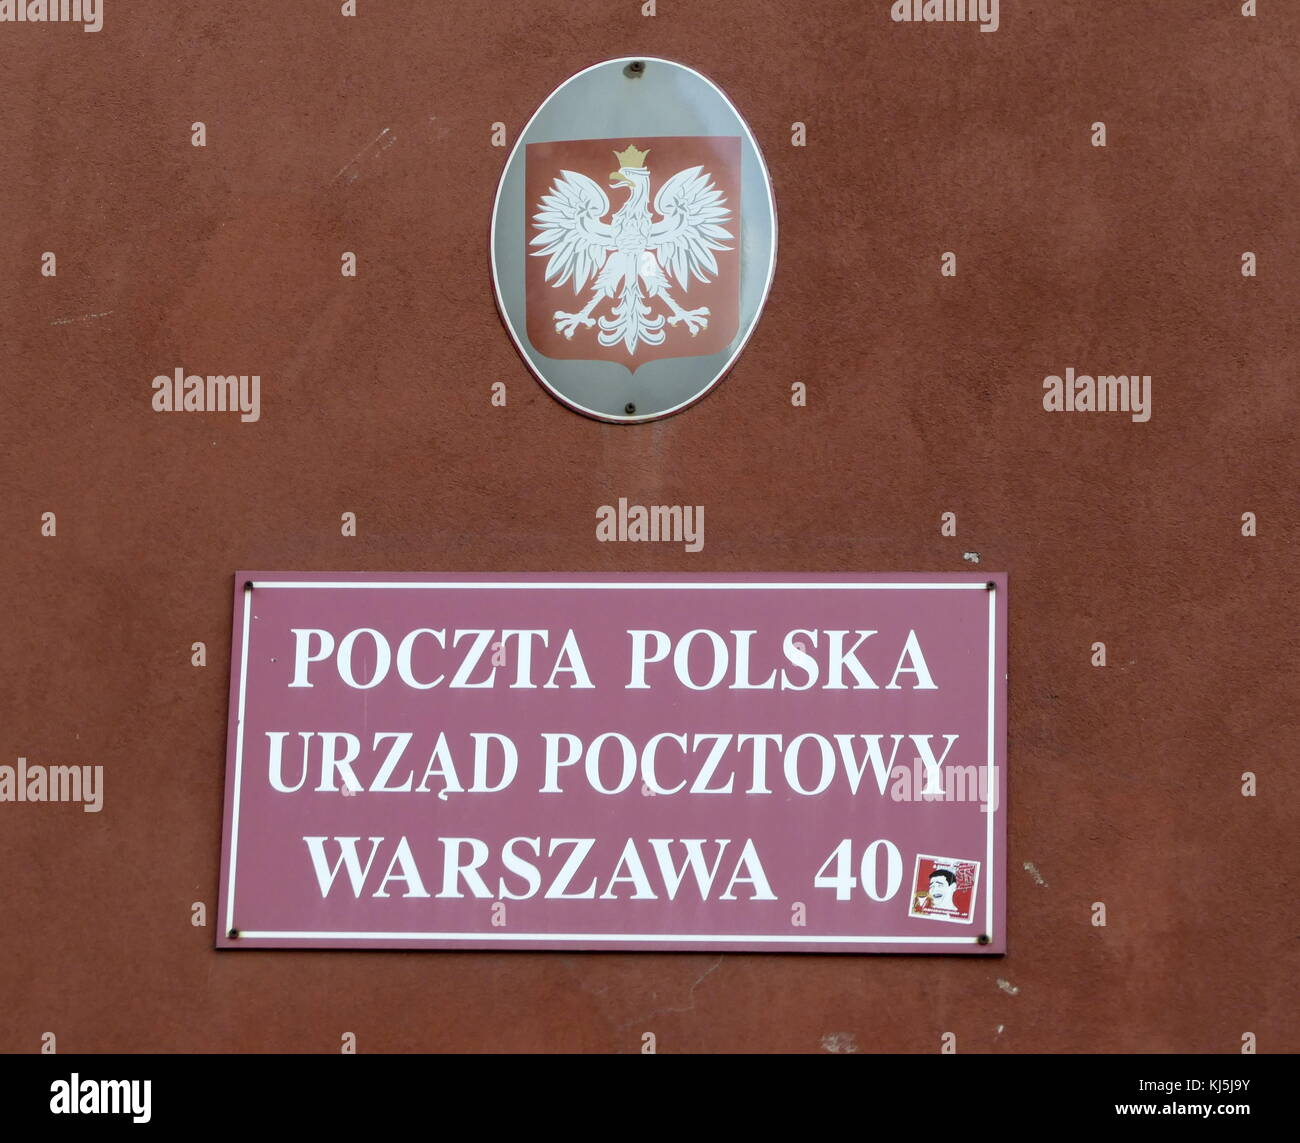 Street sign in the Old town, Warsaw, Poland with the Polish eagle crest above - Stock Image